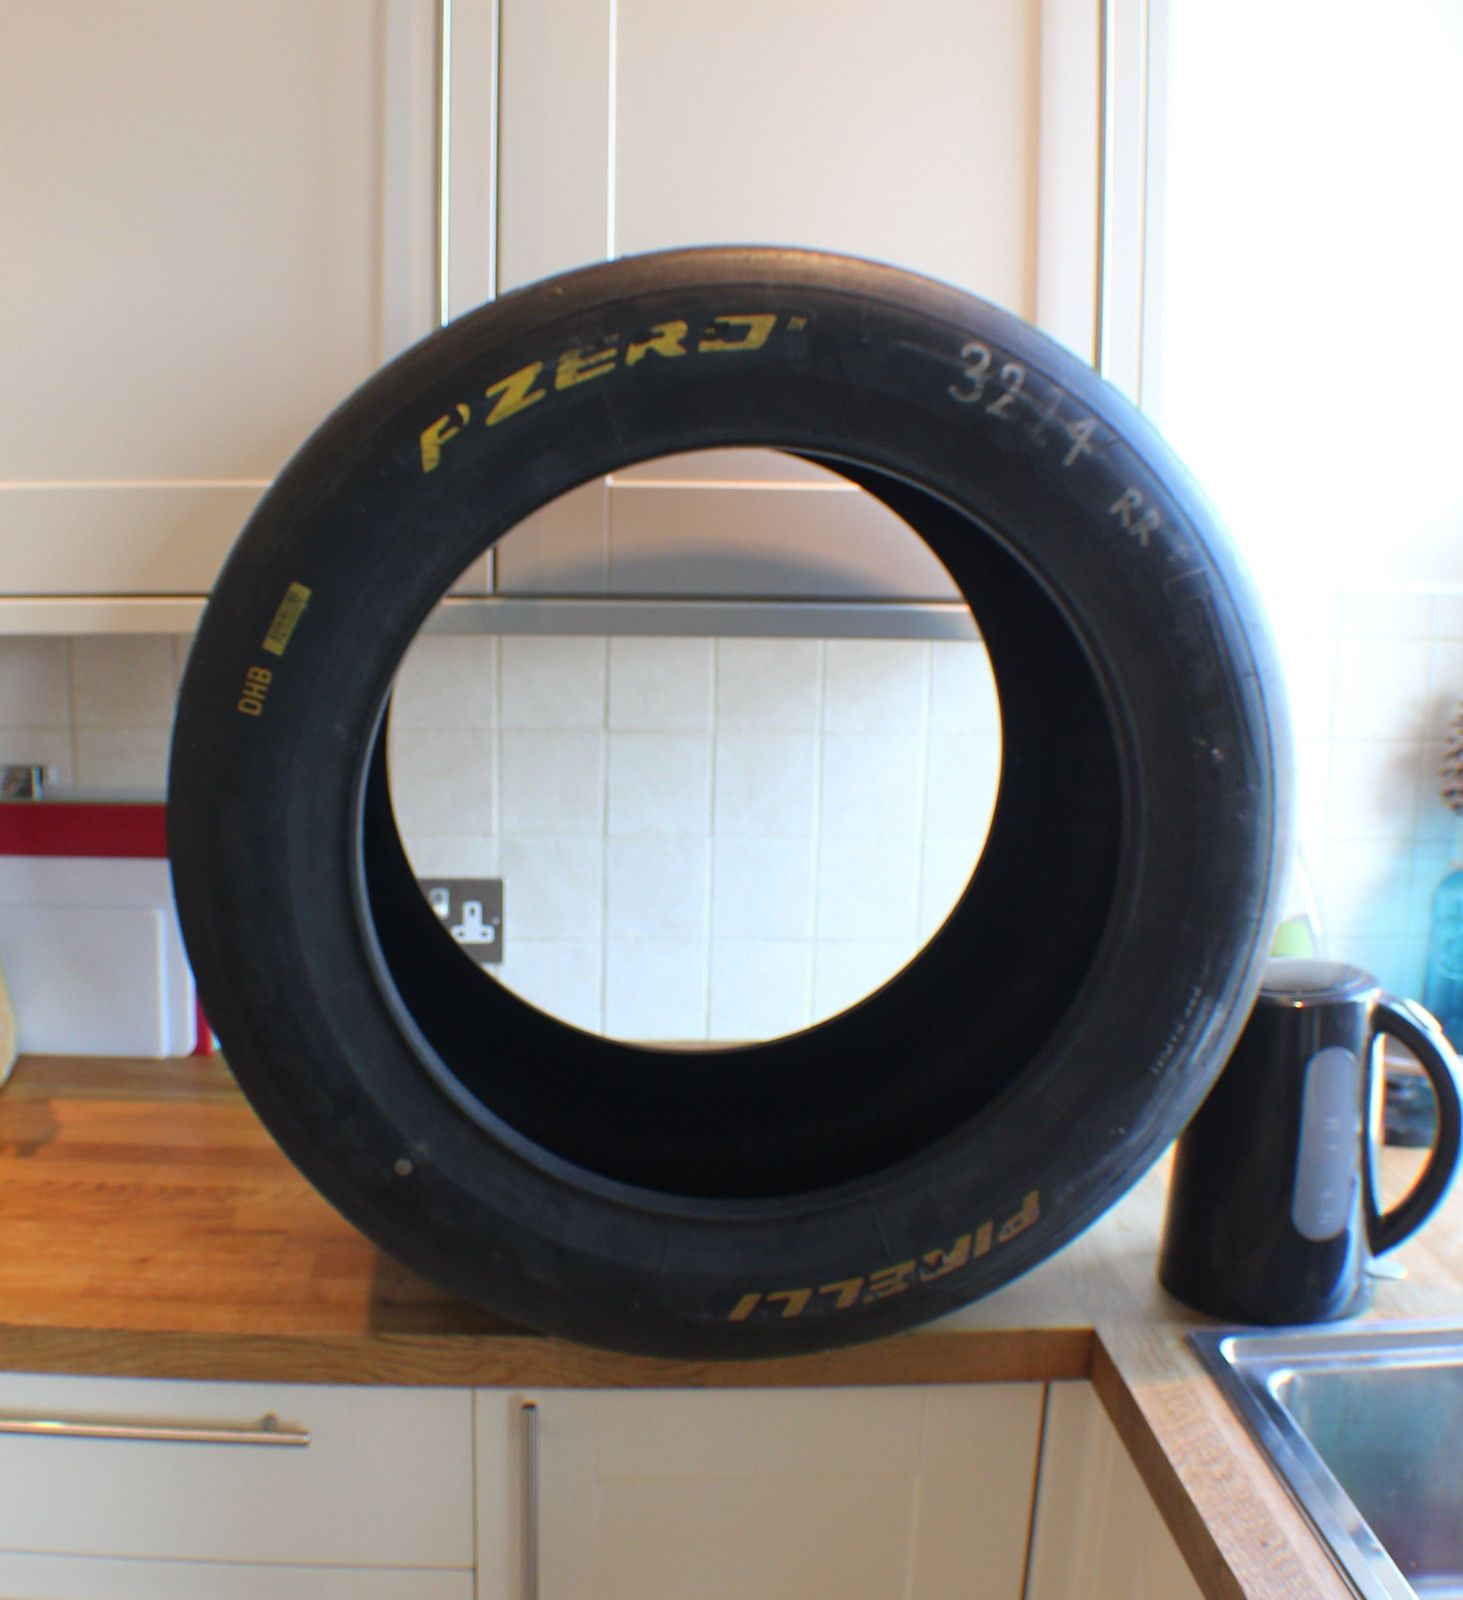 Goablo goayqi on coffee coffee tables and tables pirelli p zero soft slick le mans used tyre coffee table seat larger than geotapseo Image collections